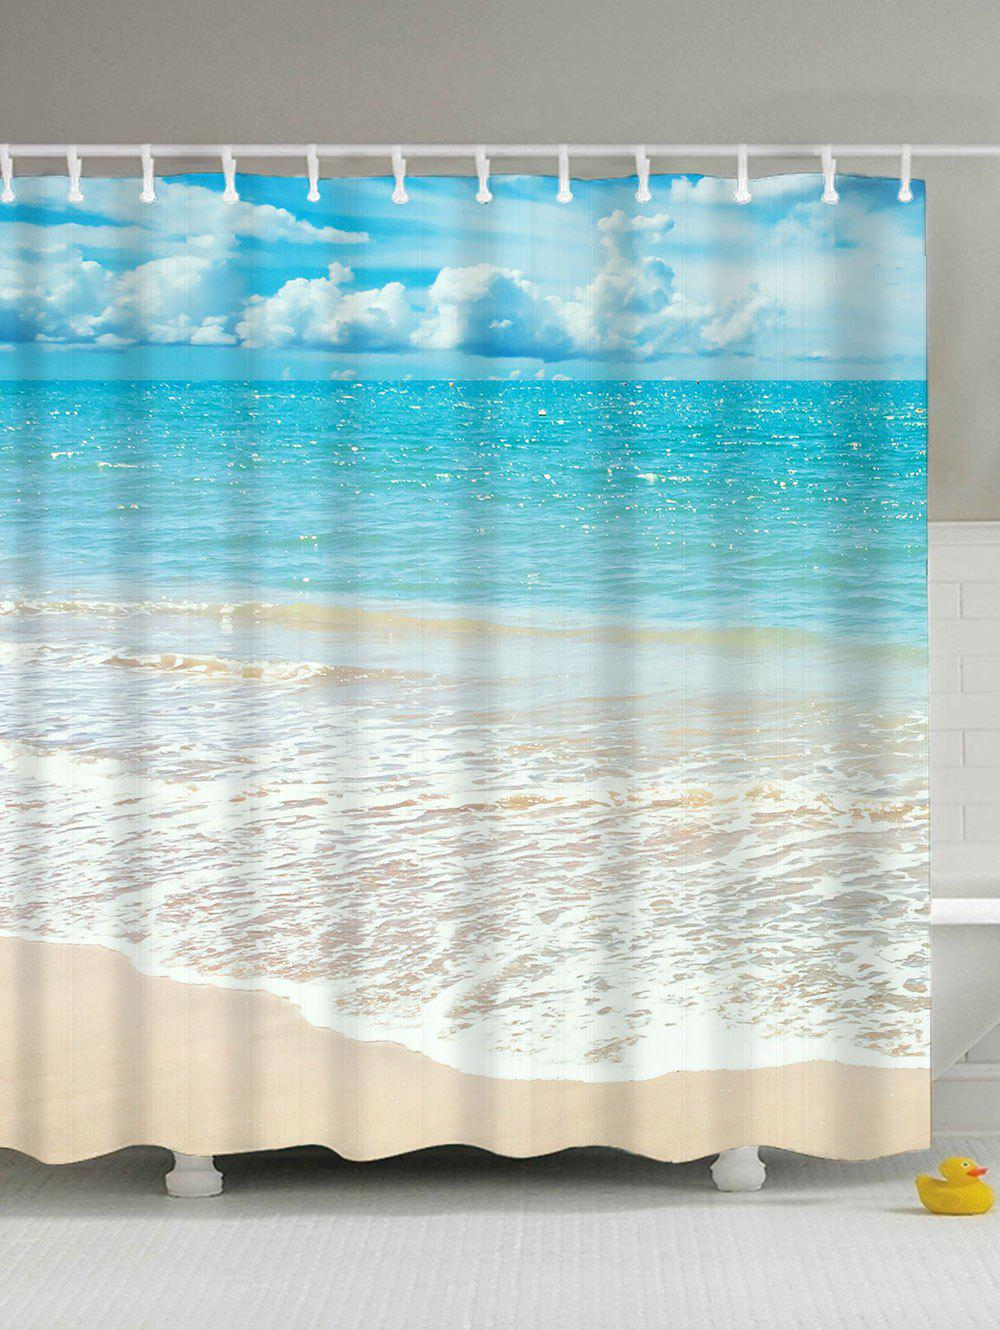 Beach Scenery Water Resistant Anti-bacteria Shower CurtainHOME<br><br>Size: 150*180CM; Color: LIGHT BLUE; Products Type: Shower Curtains; Materials: Polyester; Pattern: Scenic; Style: Beach Style; Shape: Rectangular; Weight: 0.5500kg; Package Contents: 1 x Shower Curtain 1 x Hooks?Set?;